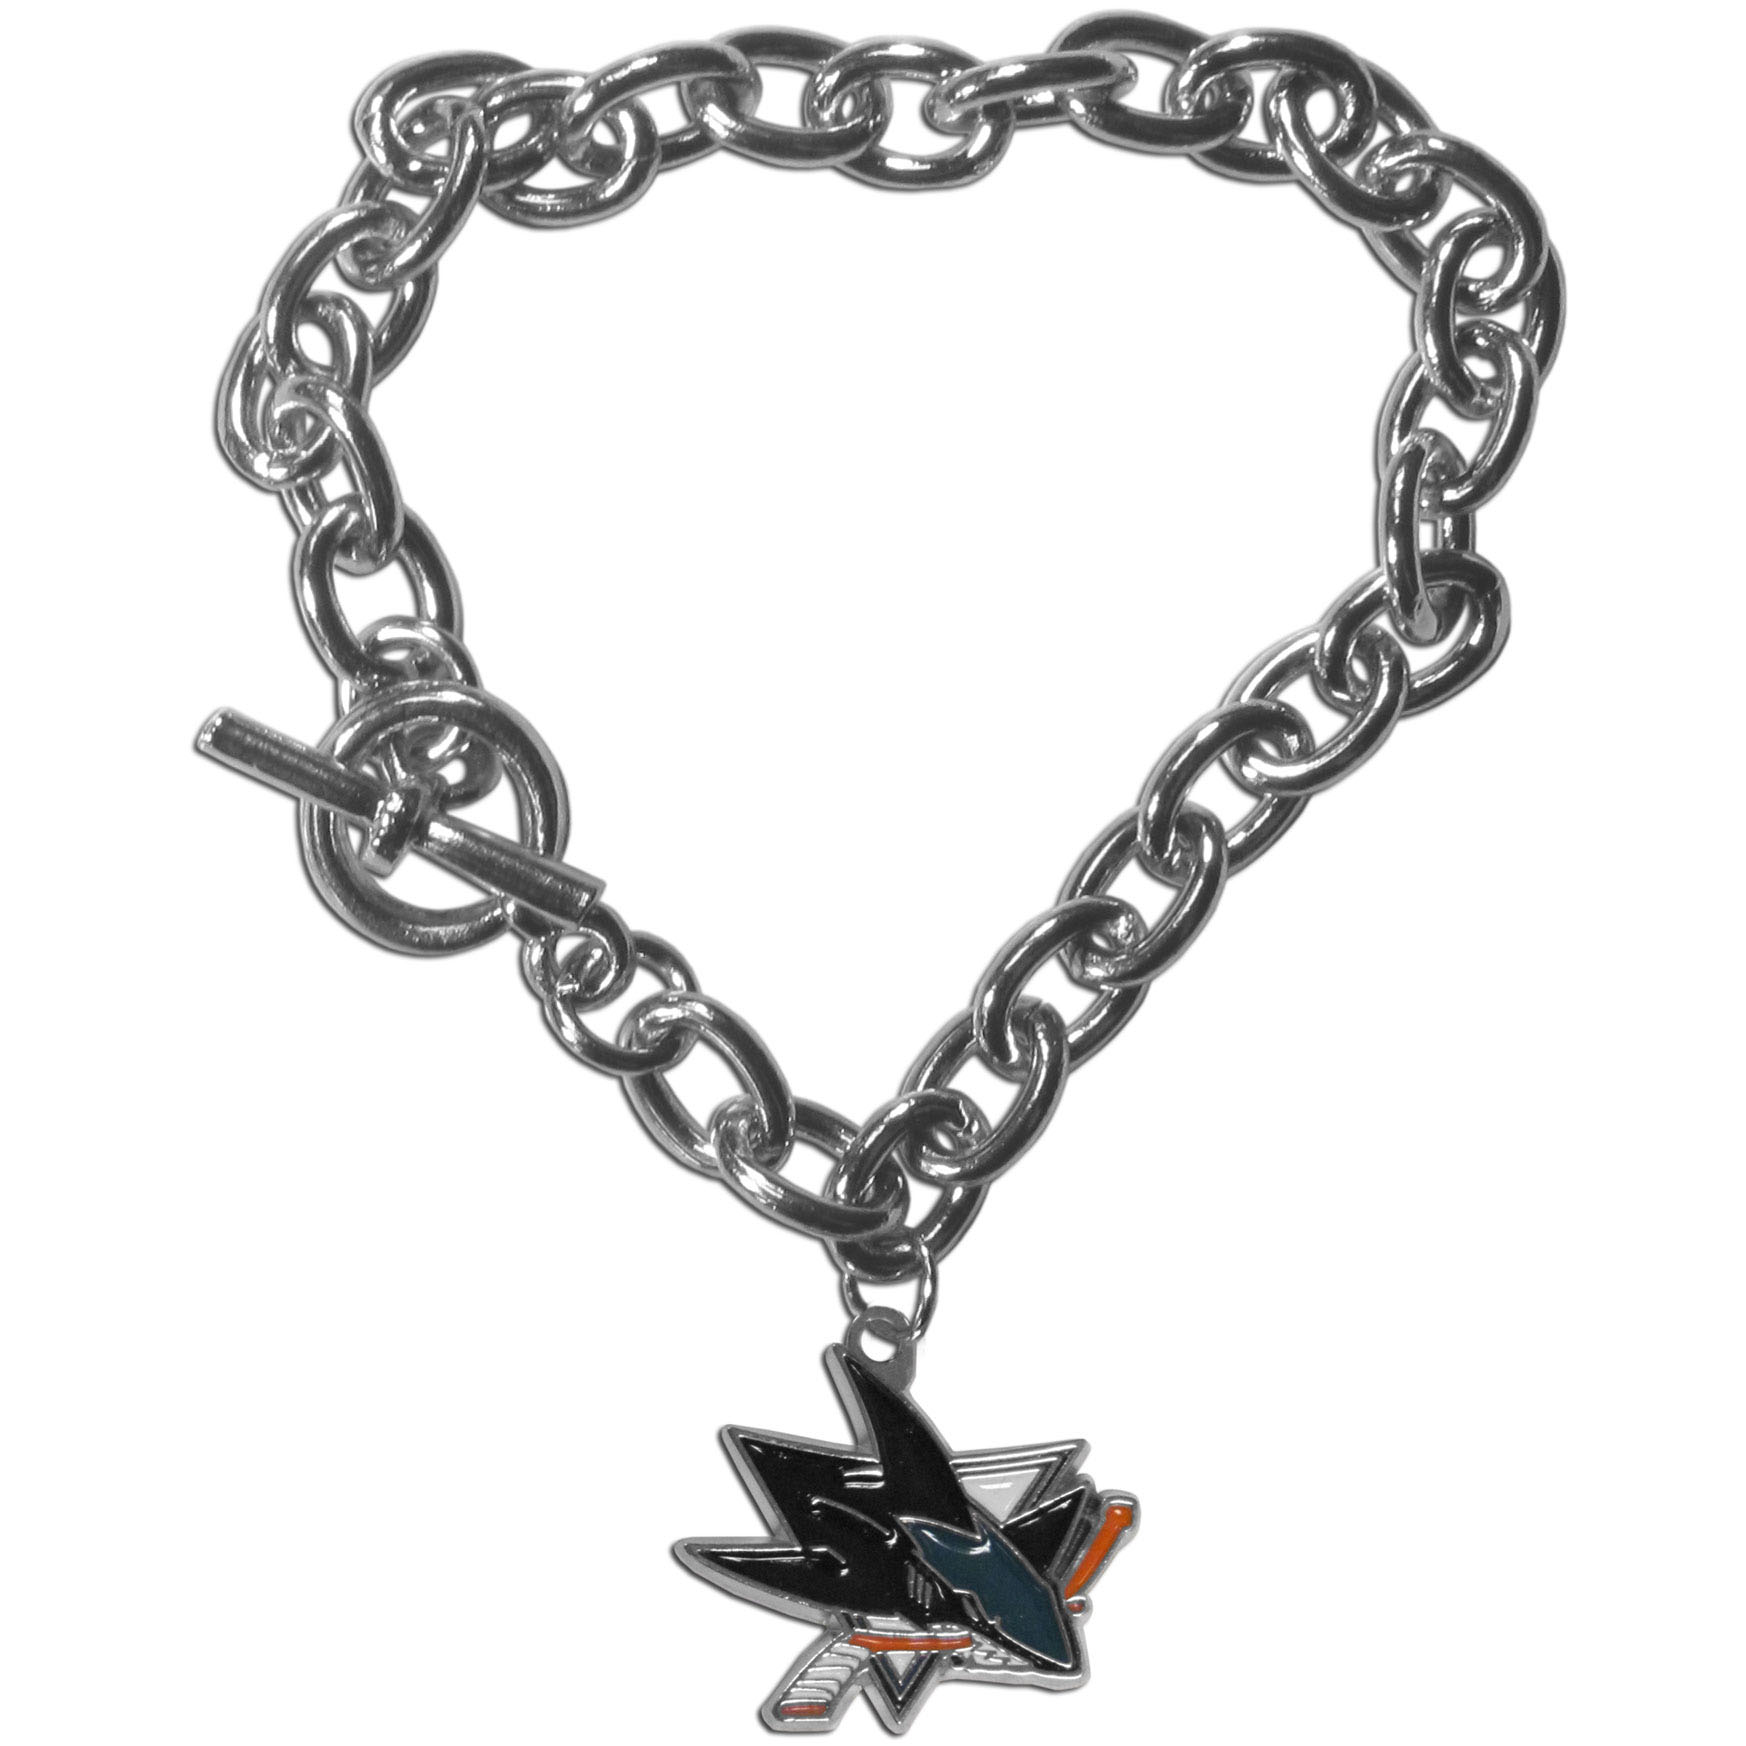 San Jose Sharks® Charm Chain Bracelet - Our classic single charm bracelet is a great way to show off your team pride! The 7.5 inch large link chain features a high polish San Jose Sharks® charm and features a toggle clasp which makes it super easy to take on and off.